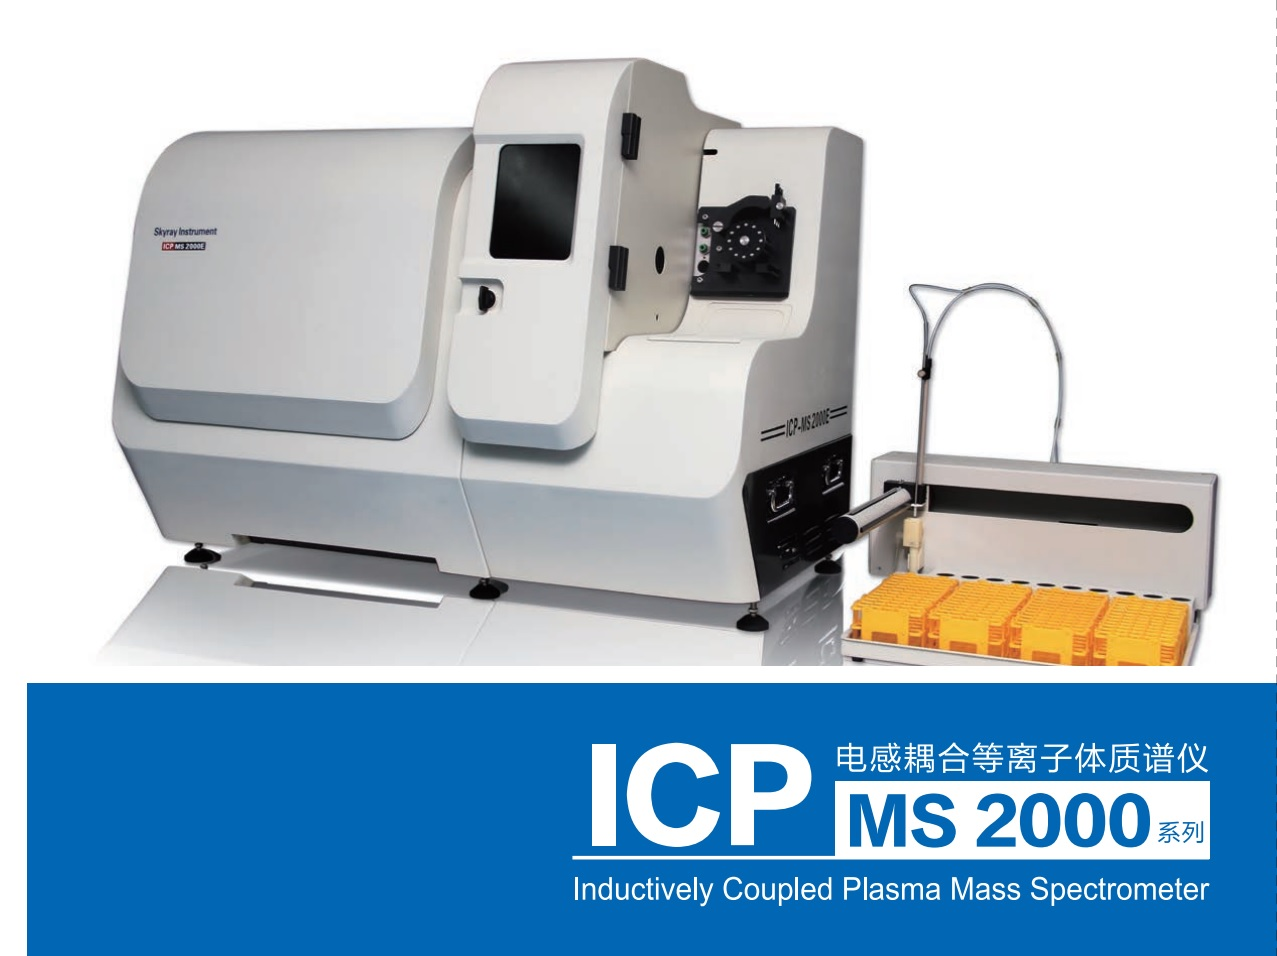 Jiangsu Skyray Instrument Co., Ltd.-ICP MS 2000 Series